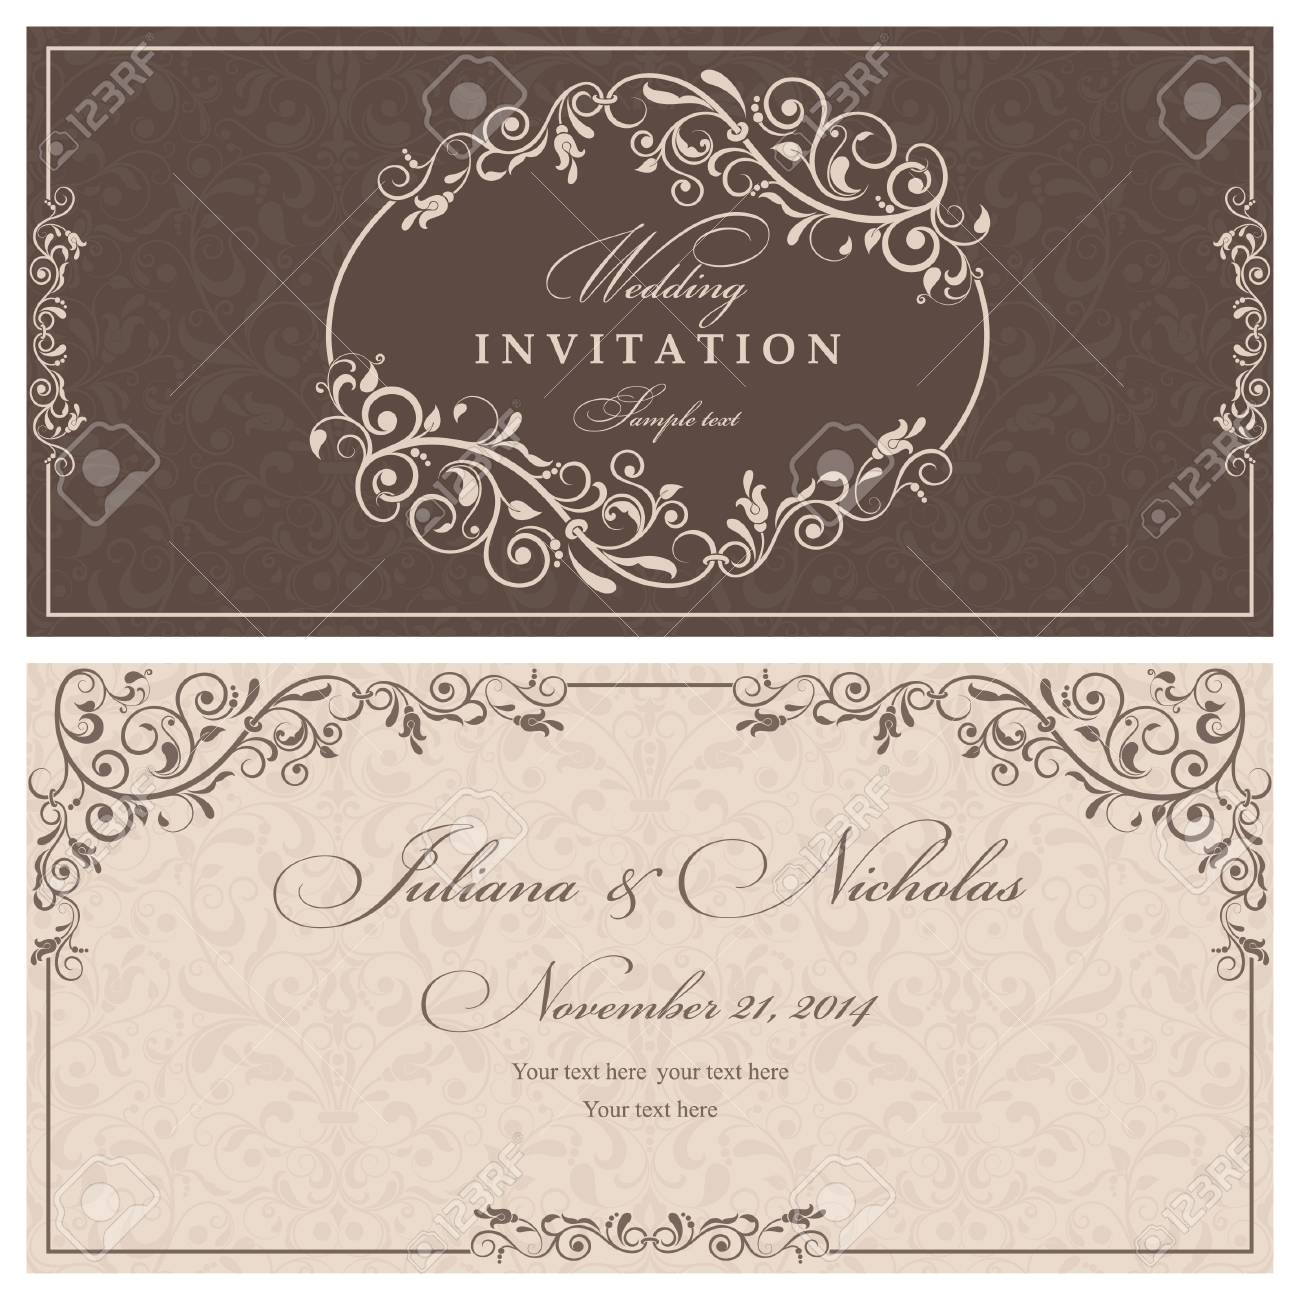 Invitation Cards In An Old-style Brown And Beige Royalty Free ...